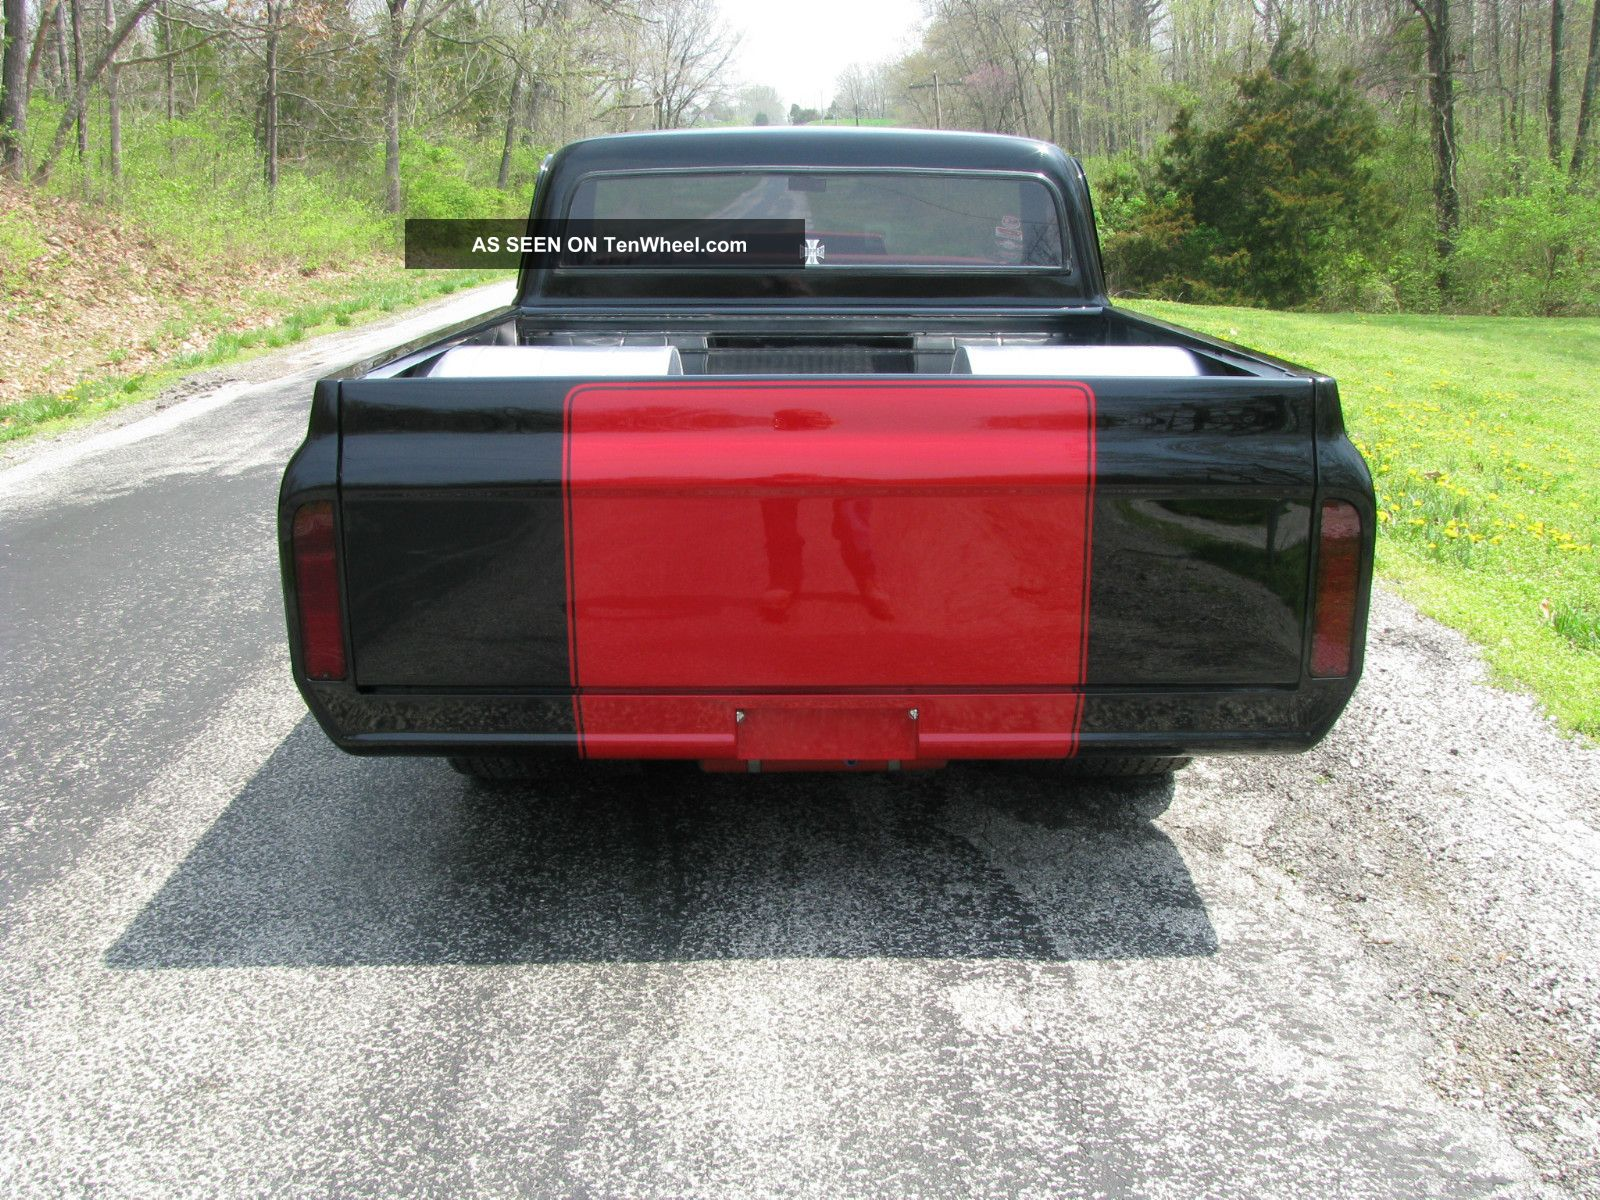 ... Truck besides Flatbed Truck Bed Tool Boxes as well Colorbond Colour